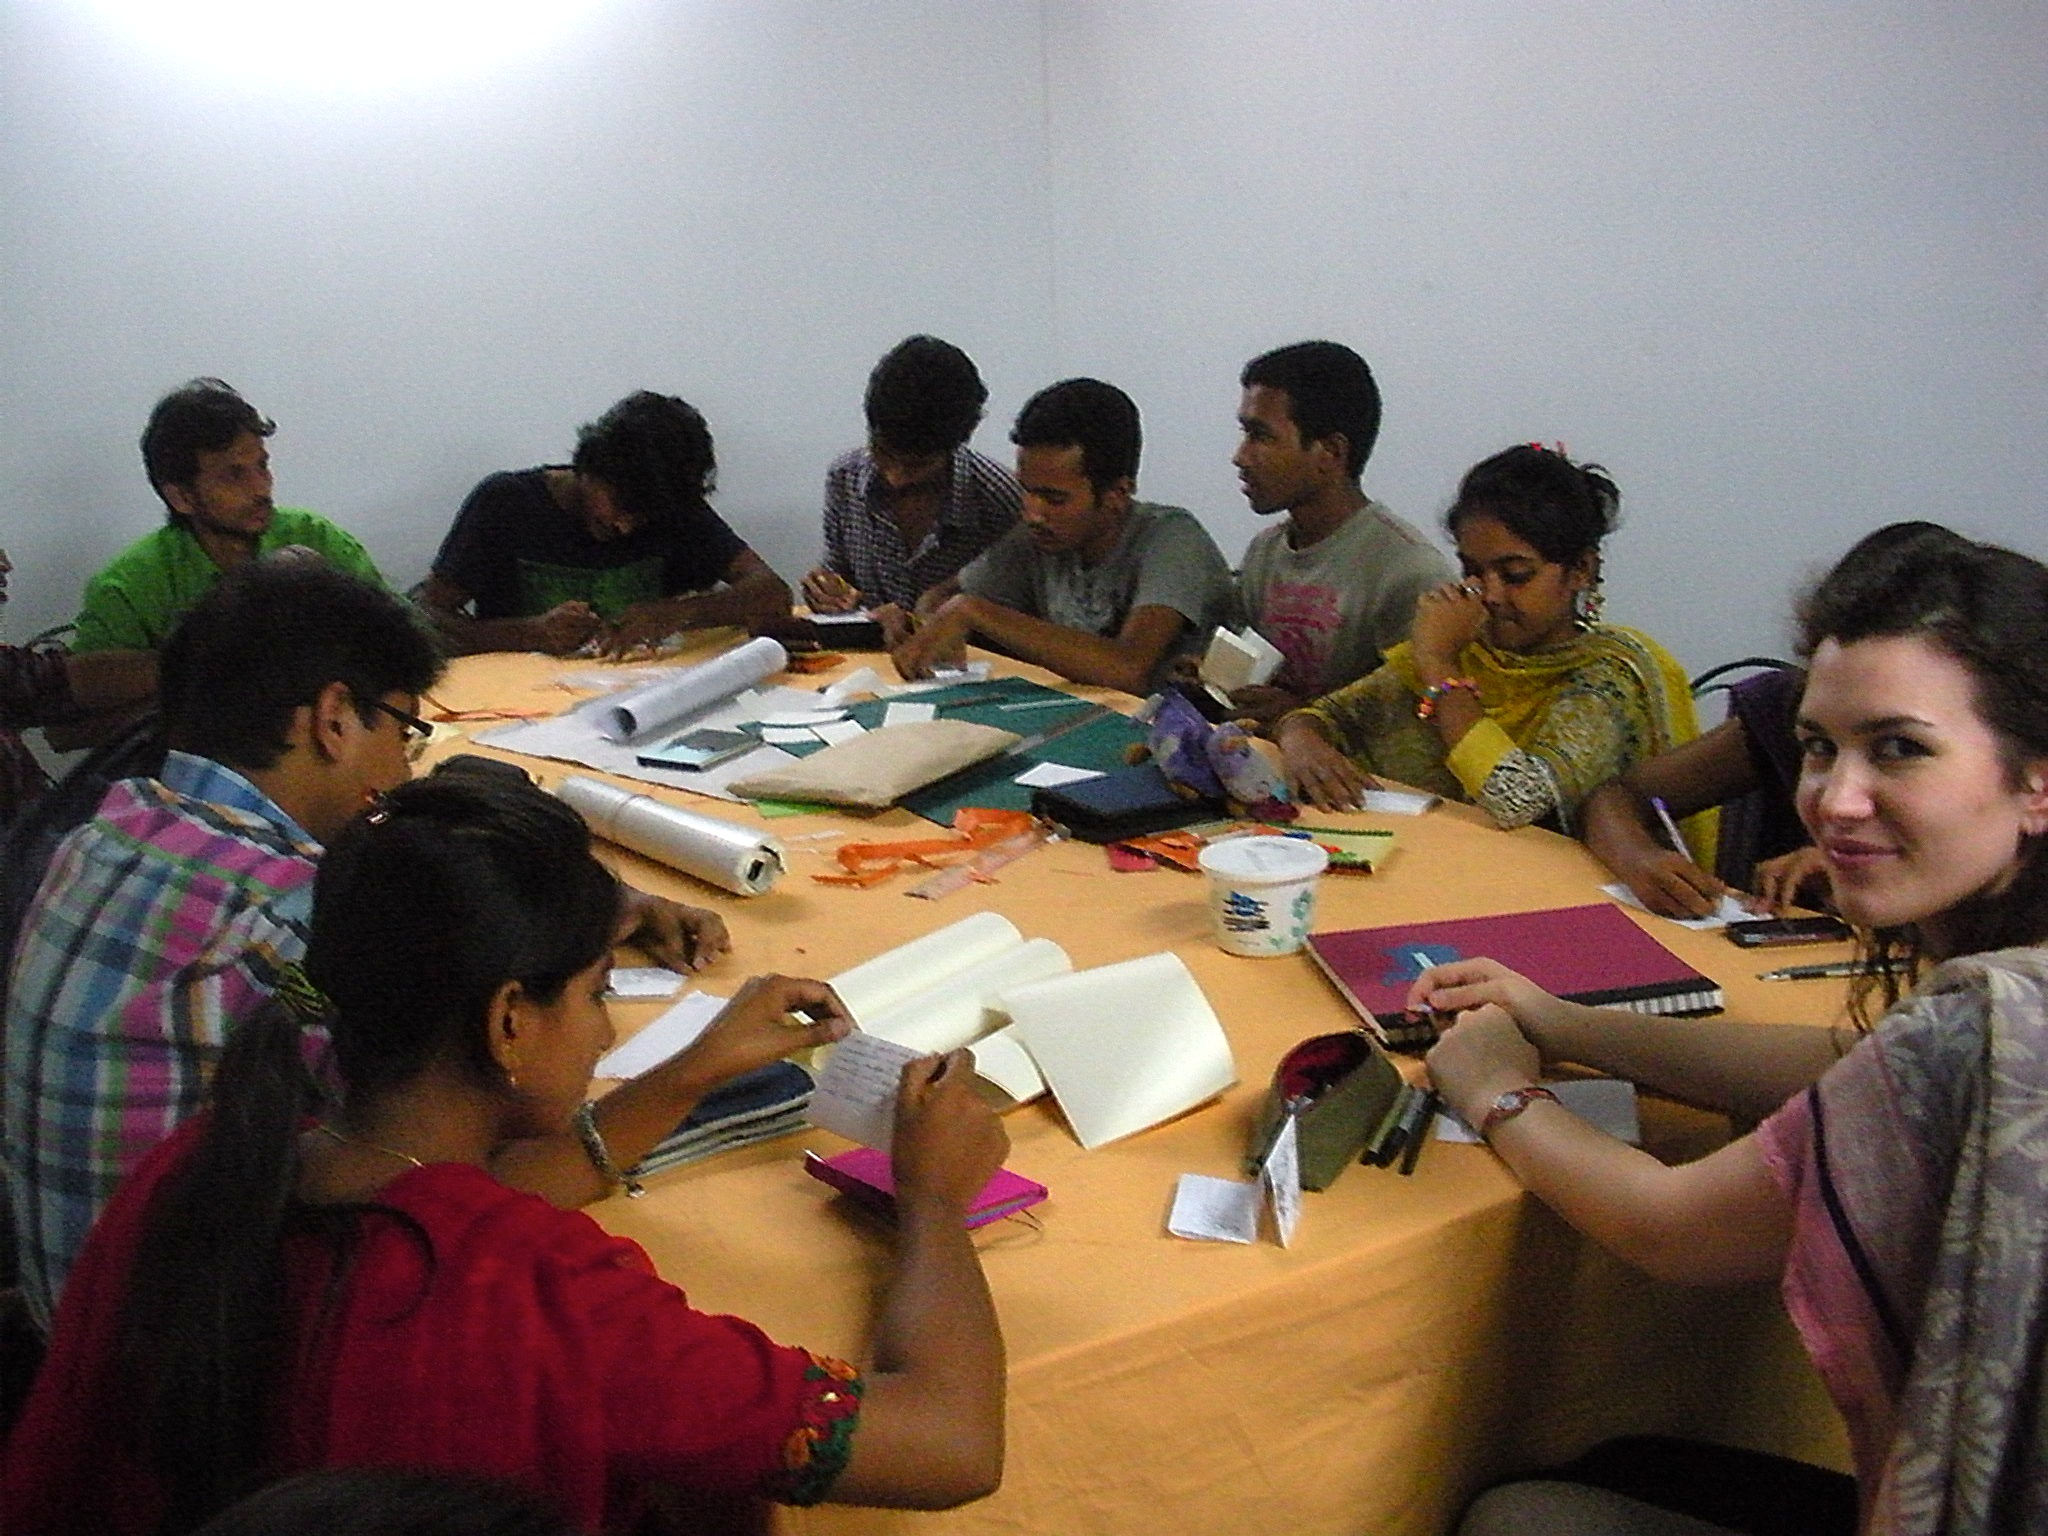 Camille Hawbaker (far right) leading a printmaking workshop in Bangladesh.